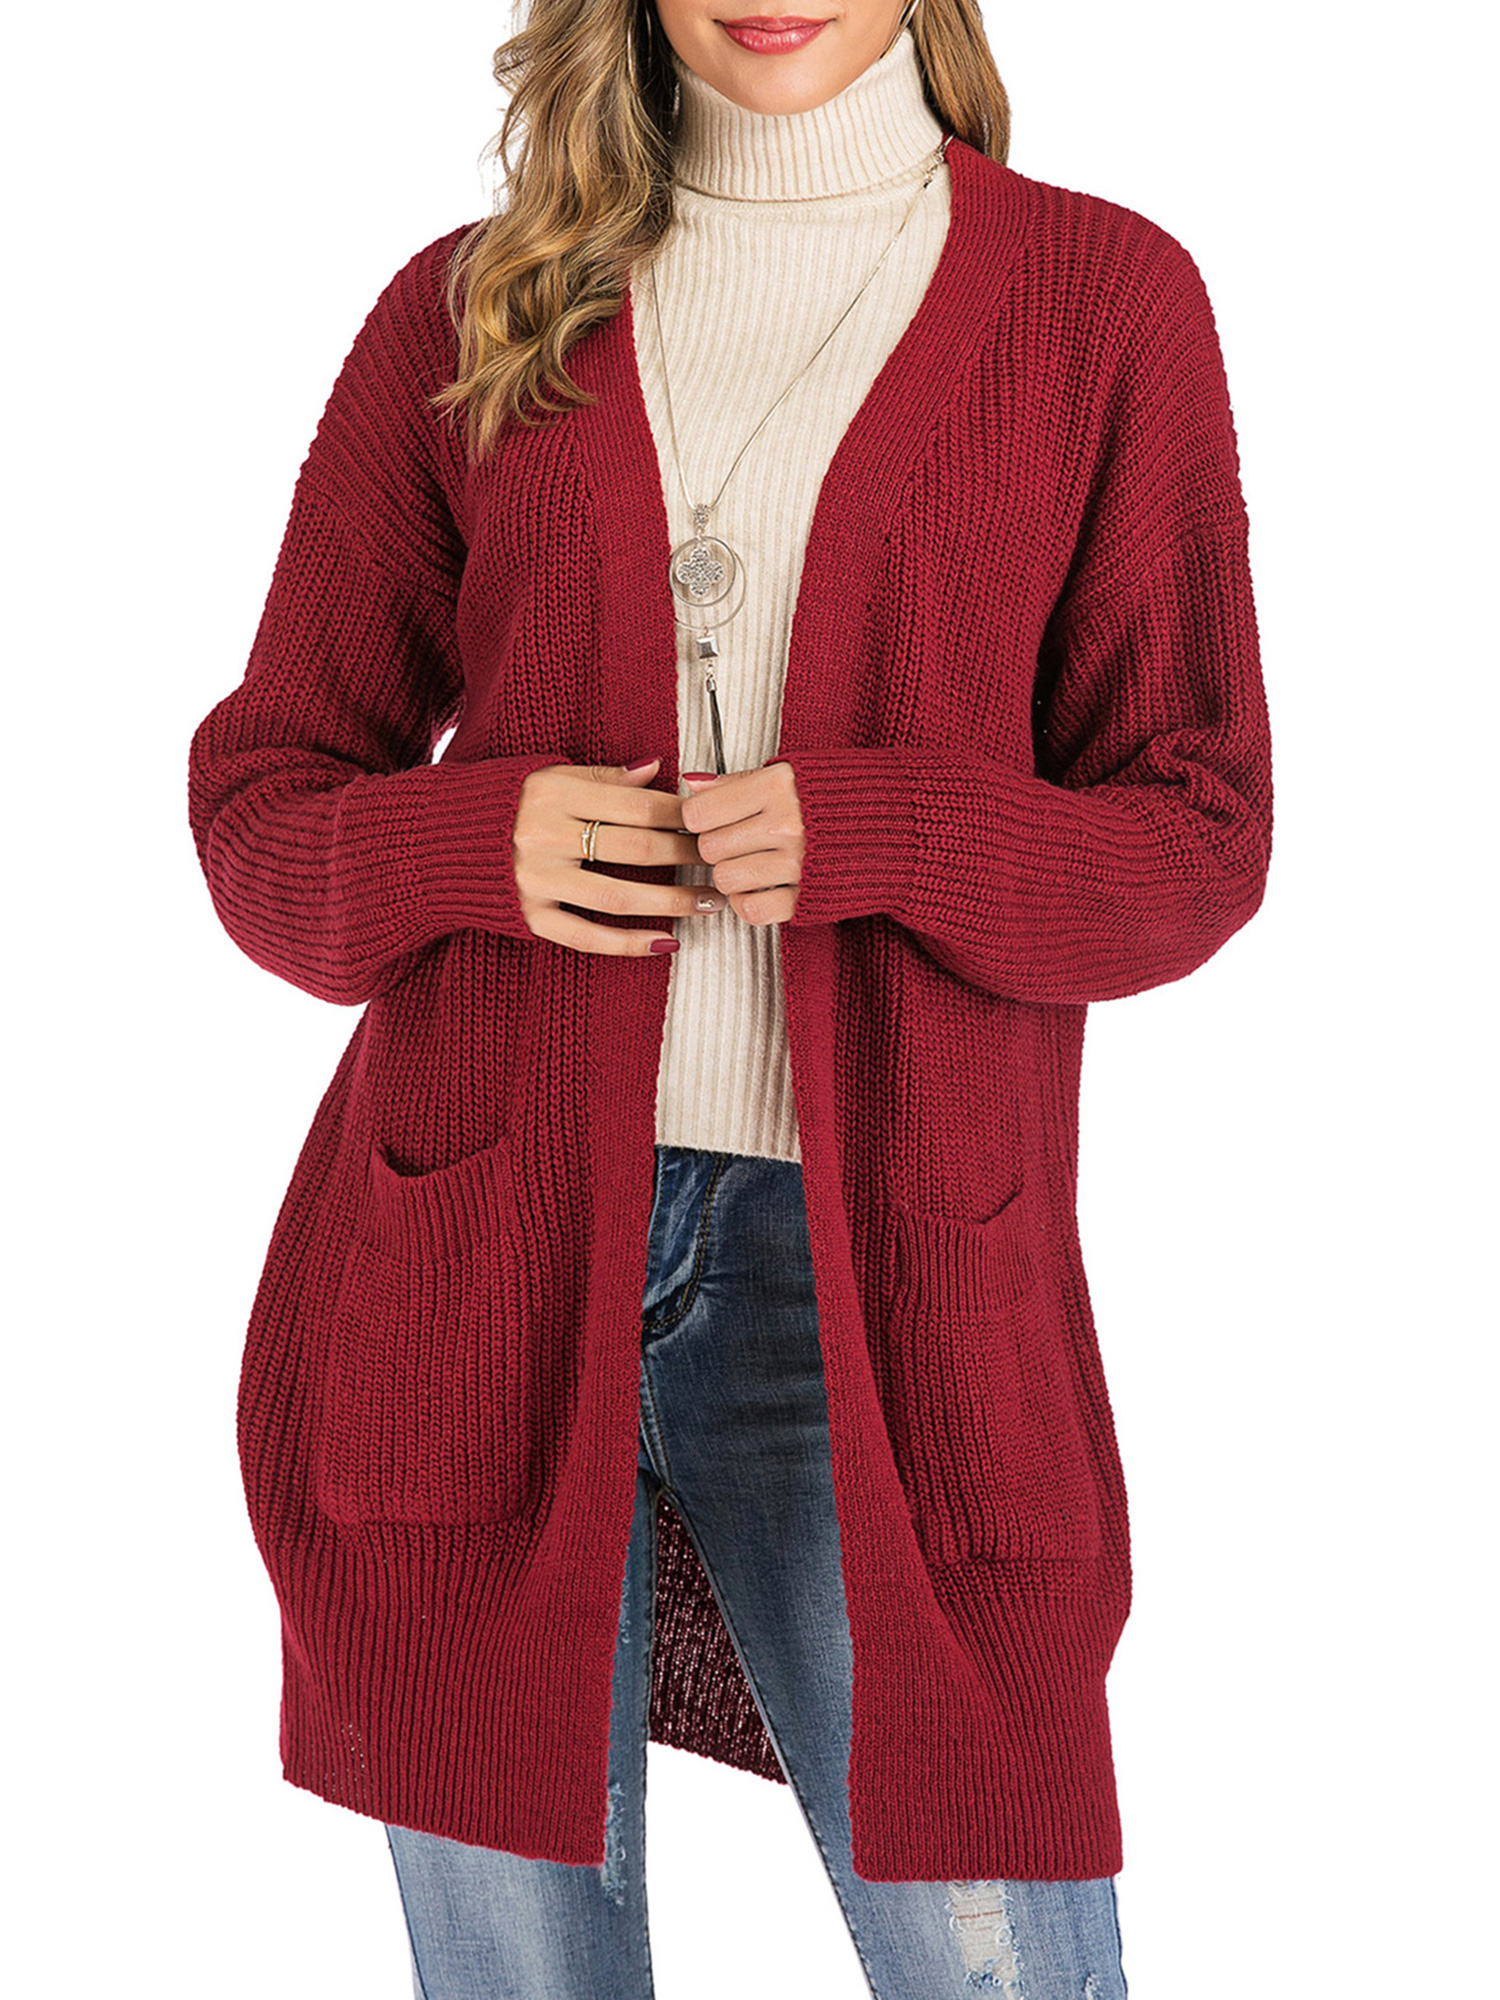 SAYFUT Winter Women Knit Open Front Baggy Cardigan Coat Tops Chunky Knitted Sweater Long Sleeve Plus Size Duster Cardigan,Red